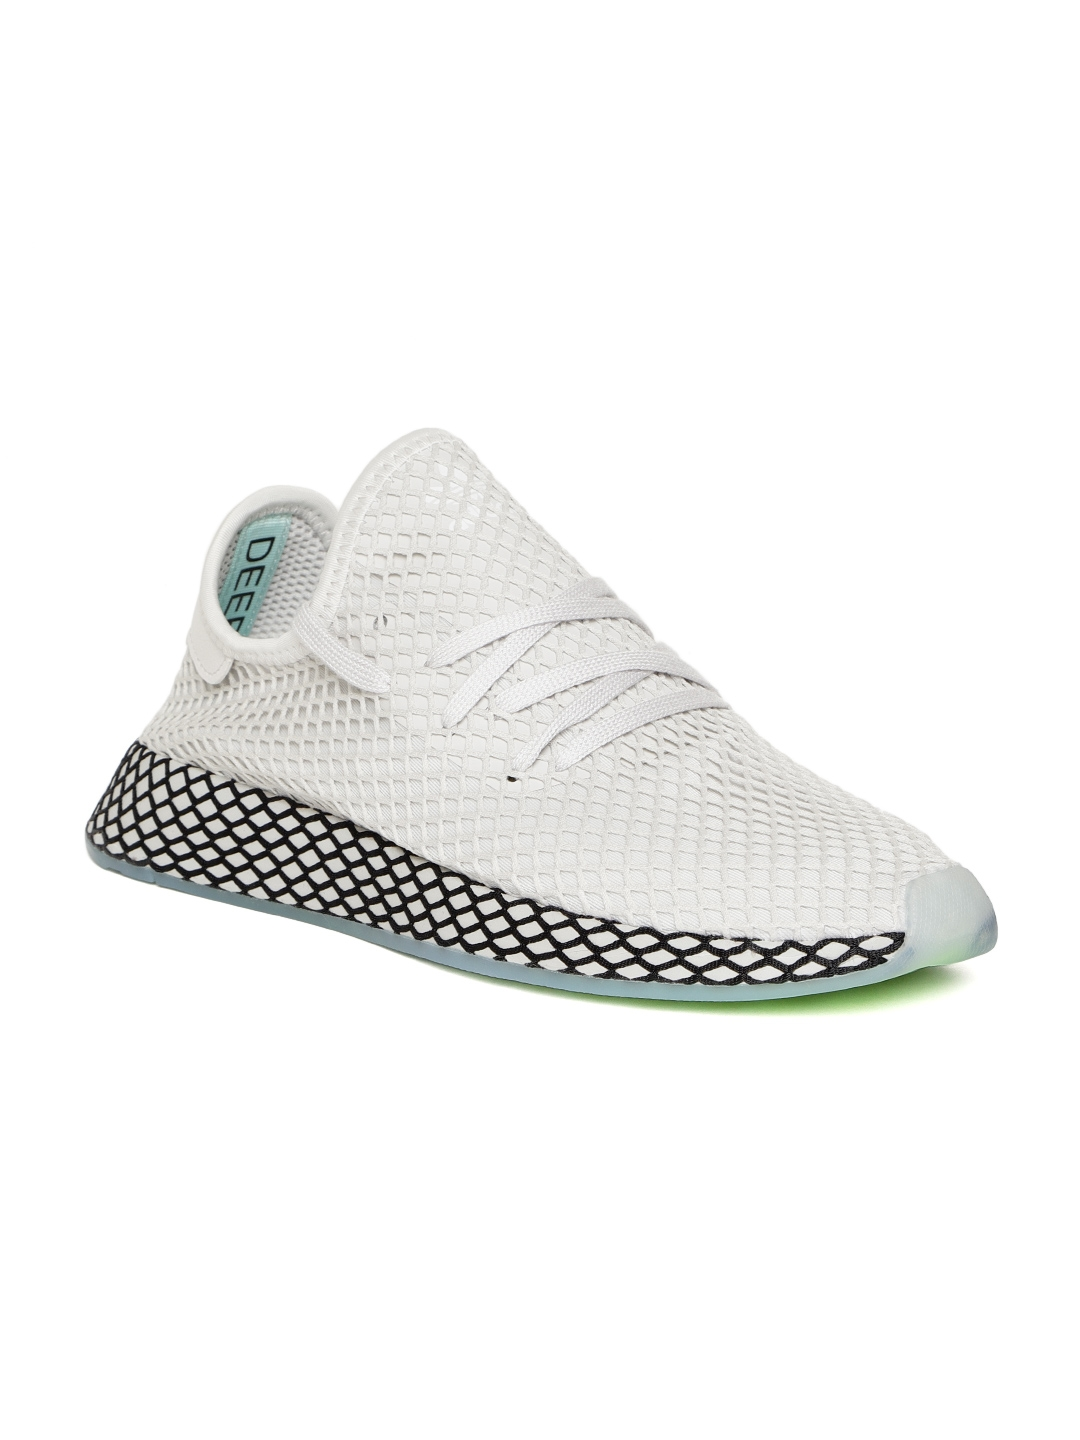 bc871a5565543 Buy ADIDAS Originals Men Grey Deerupt Runner Sneakers - Casual Shoes ...